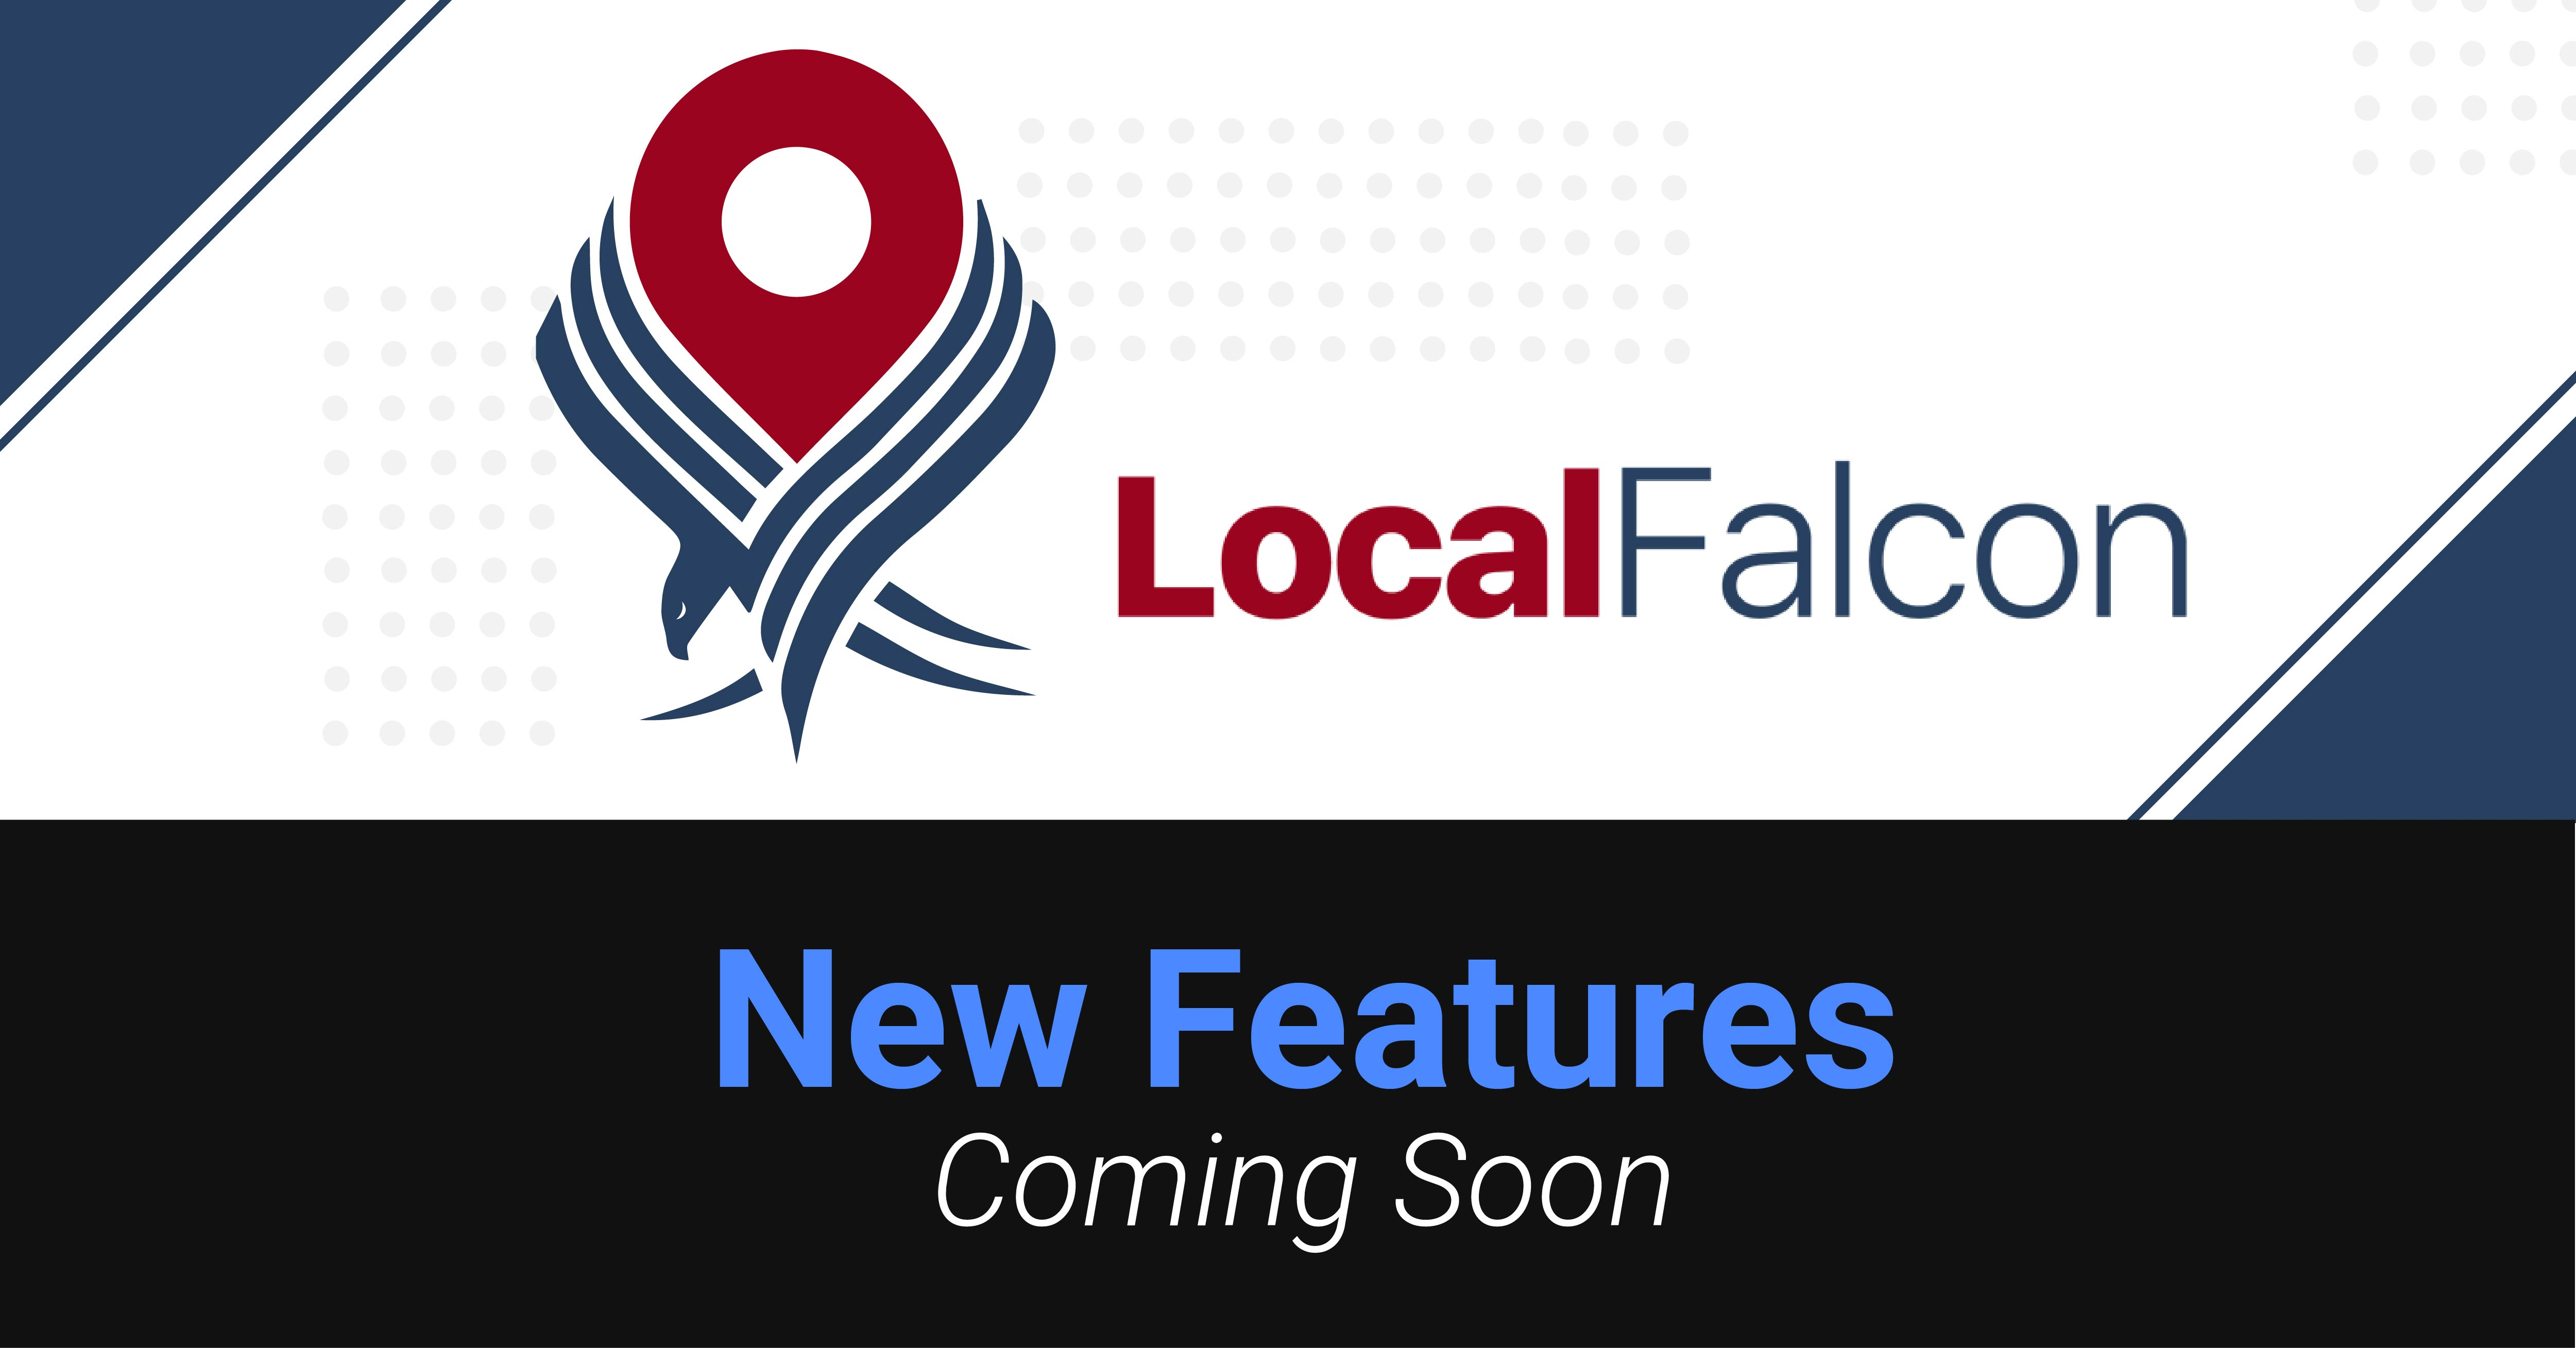 Local Falcon is releasing several highly requested features over the coming weeks. Stay tuned!